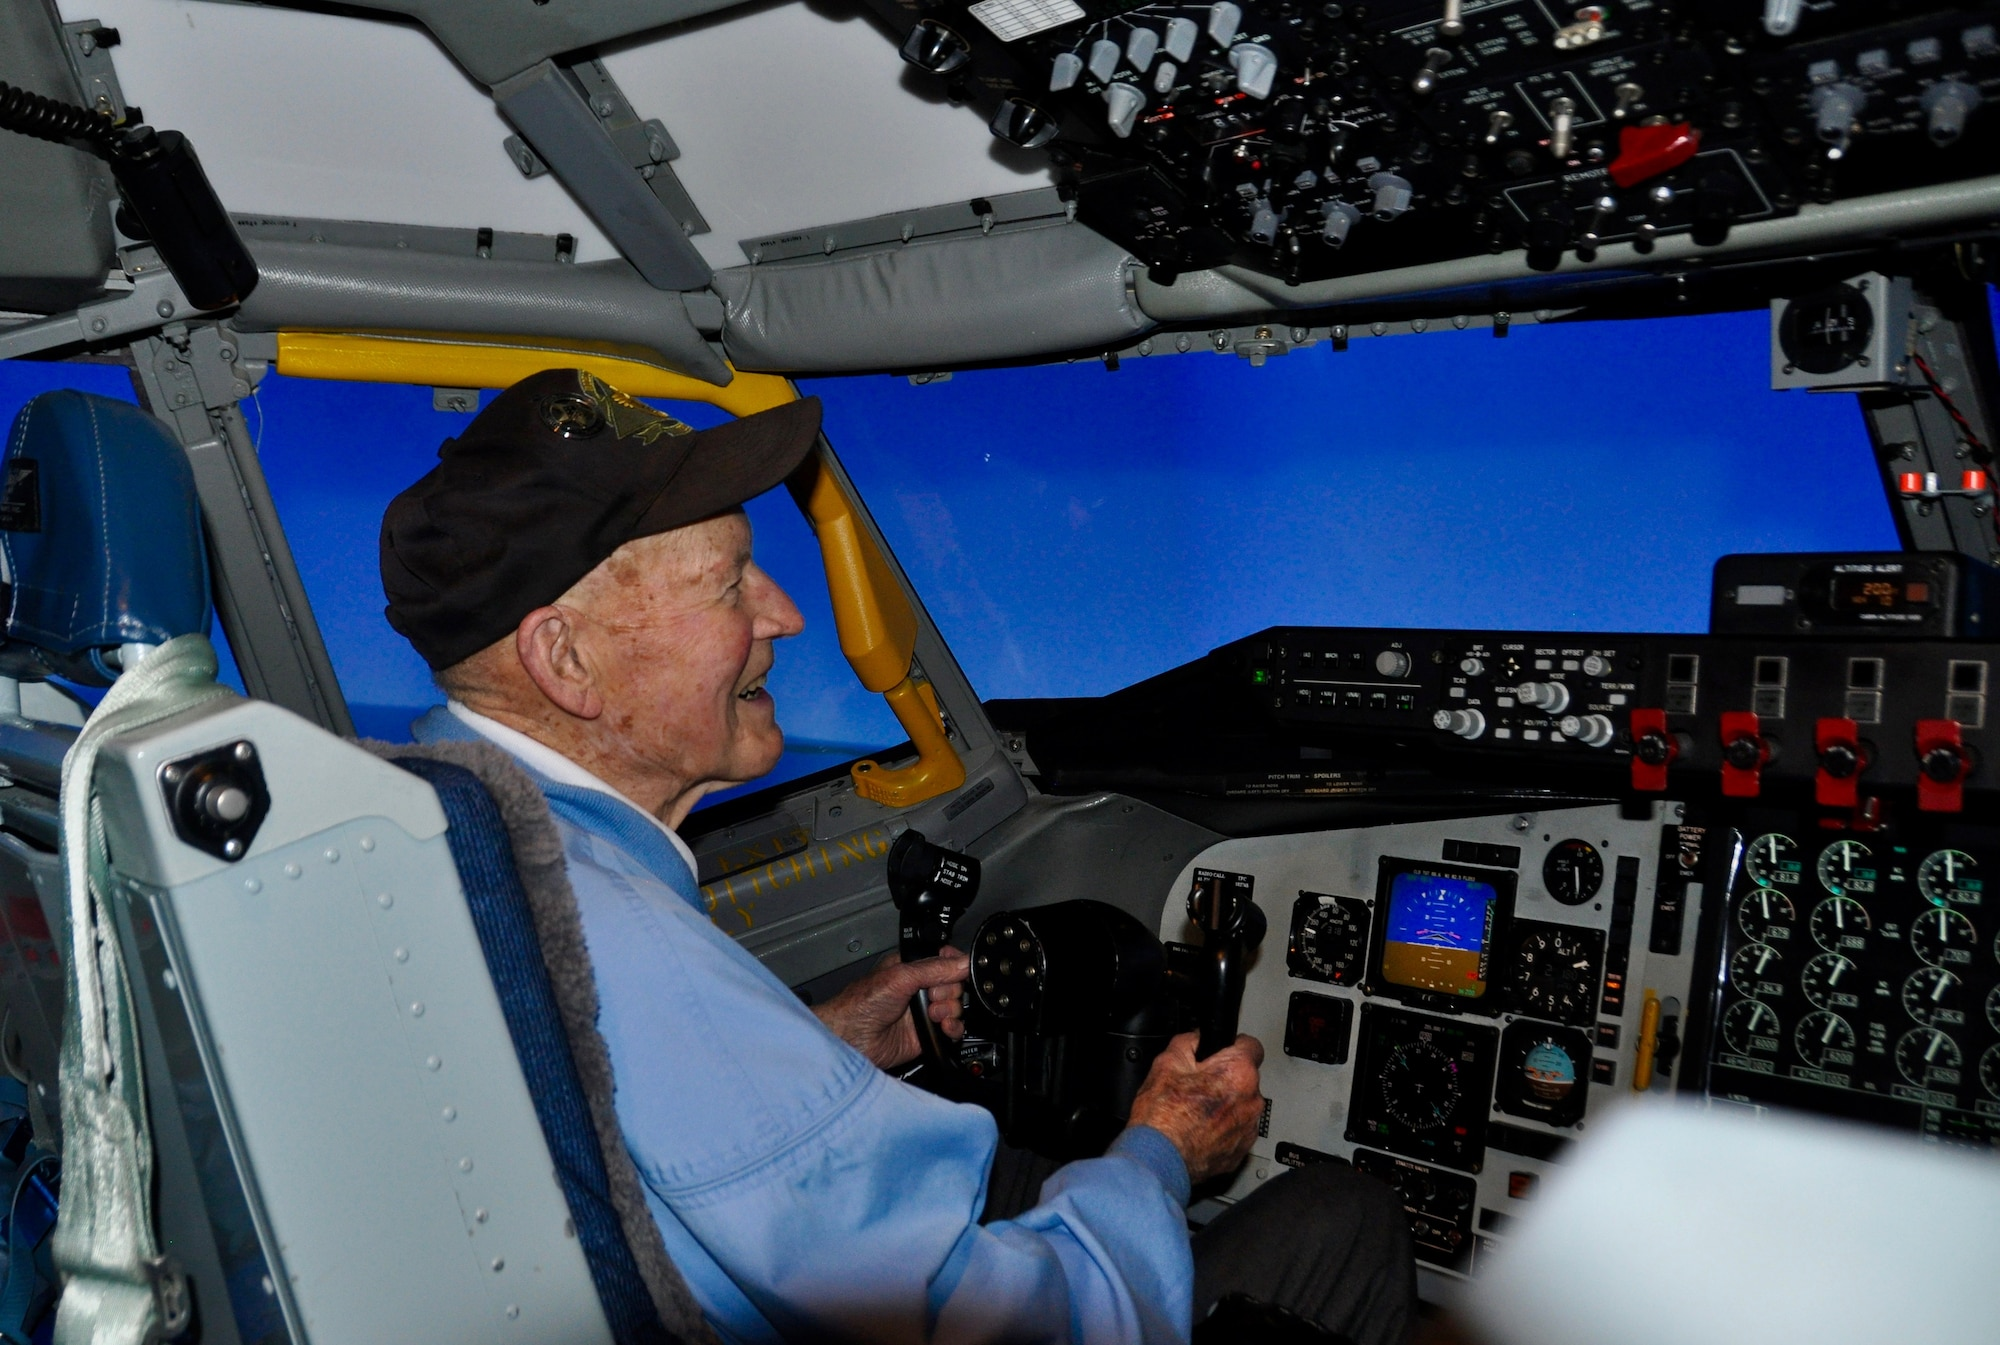 Former Staff Sgt. David Thatcher, one of two surviving Doolittle Raiders, pilots a KC-135 Stratotanker flight simulator April 18, 2016, at Fairchild Air Force Base, Wash. The simulator was configured to recreate the path 16 B-25 Mitchell aircraft flew over Tokyo on April 18, 1942. (U.S. Air Force photo/2nd Lt. Shelley Gregory)